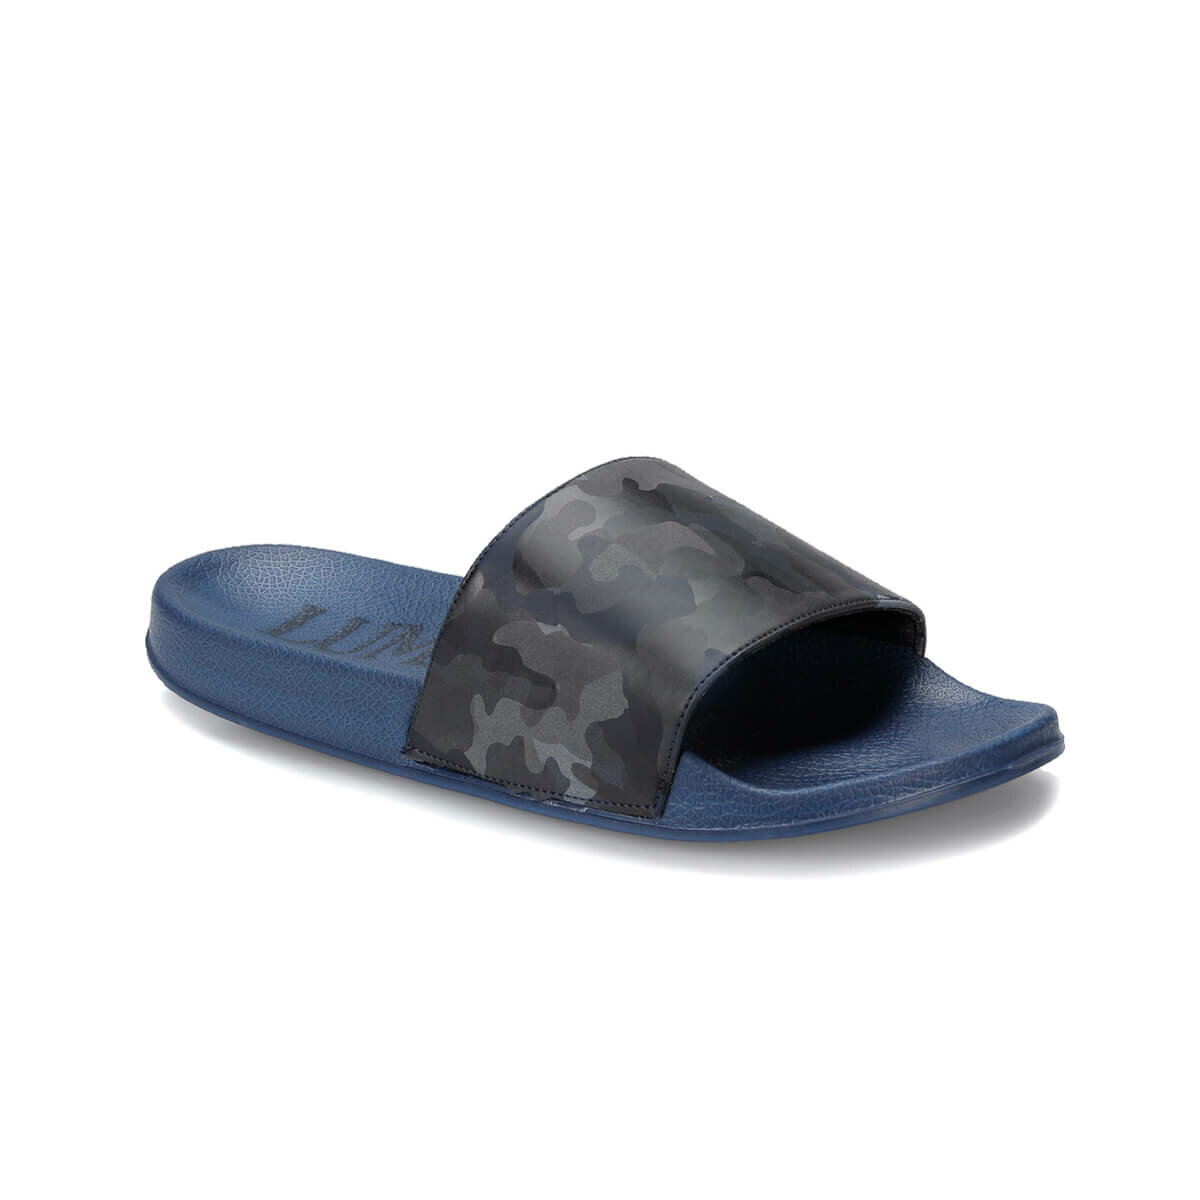 FLO THERMO Navy Blue Male Slippers LUMBERJACK